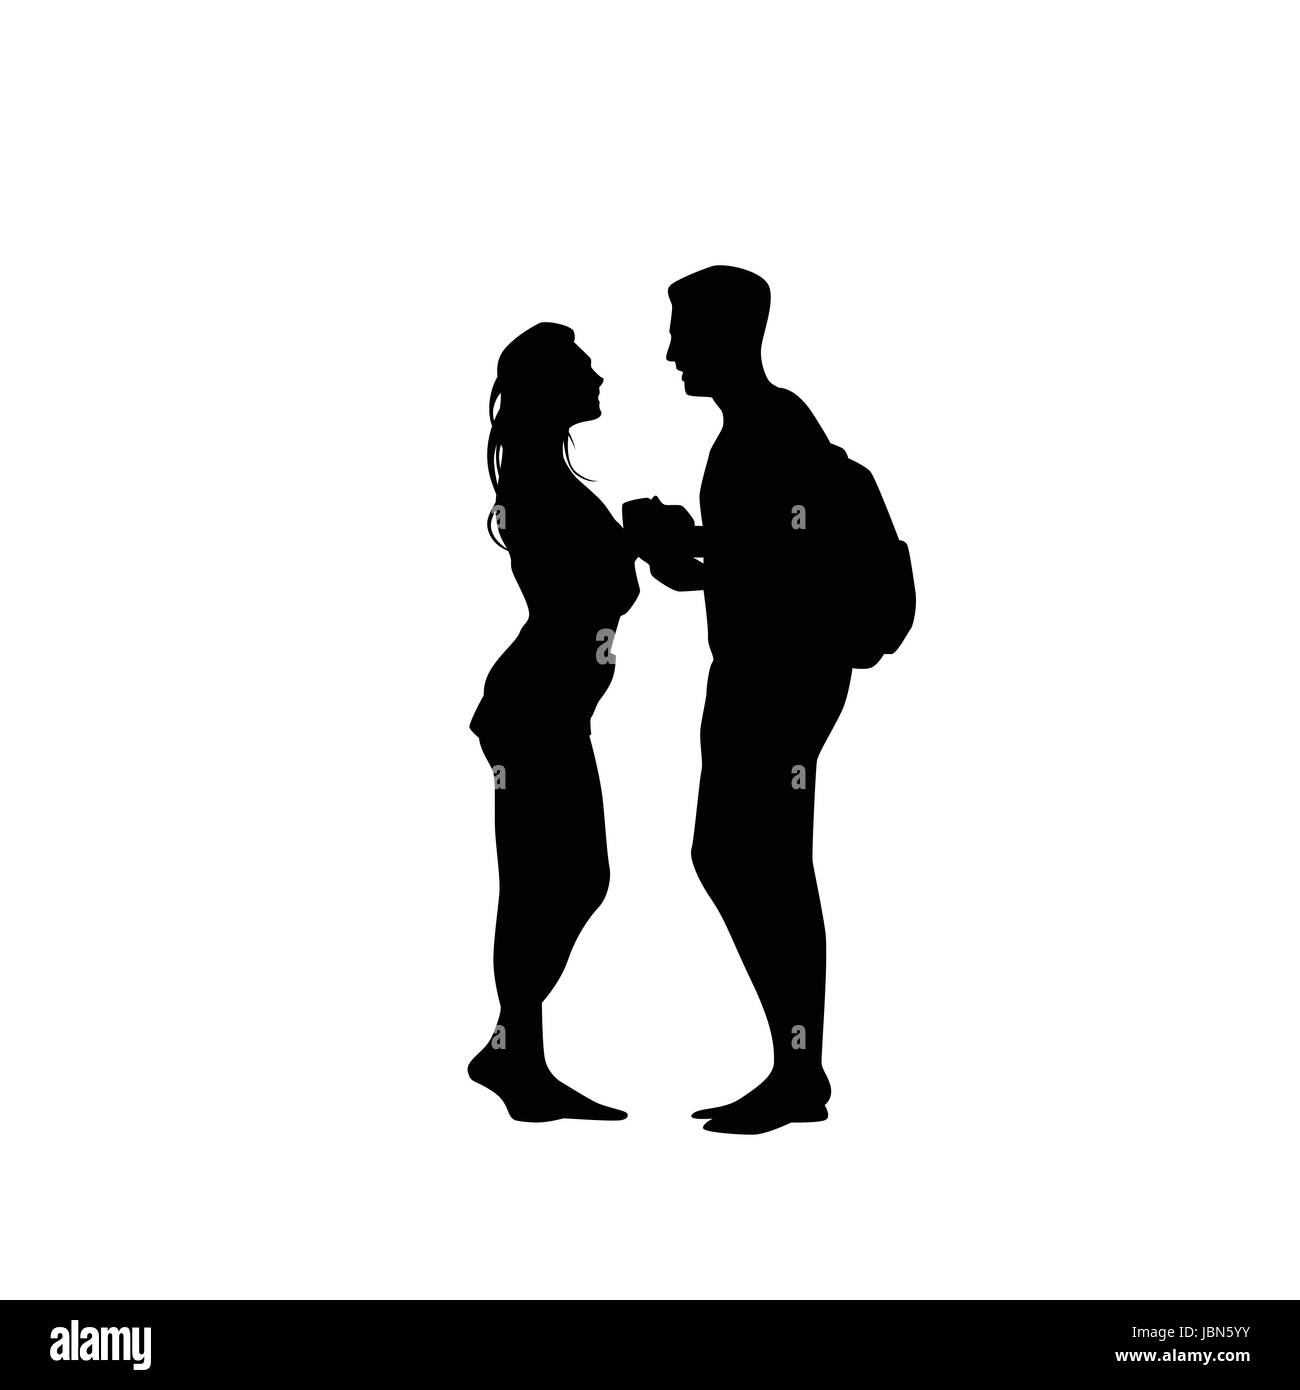 Black silhouette romantic couple holding hands looking at each other isolated over white background lovers man and woman